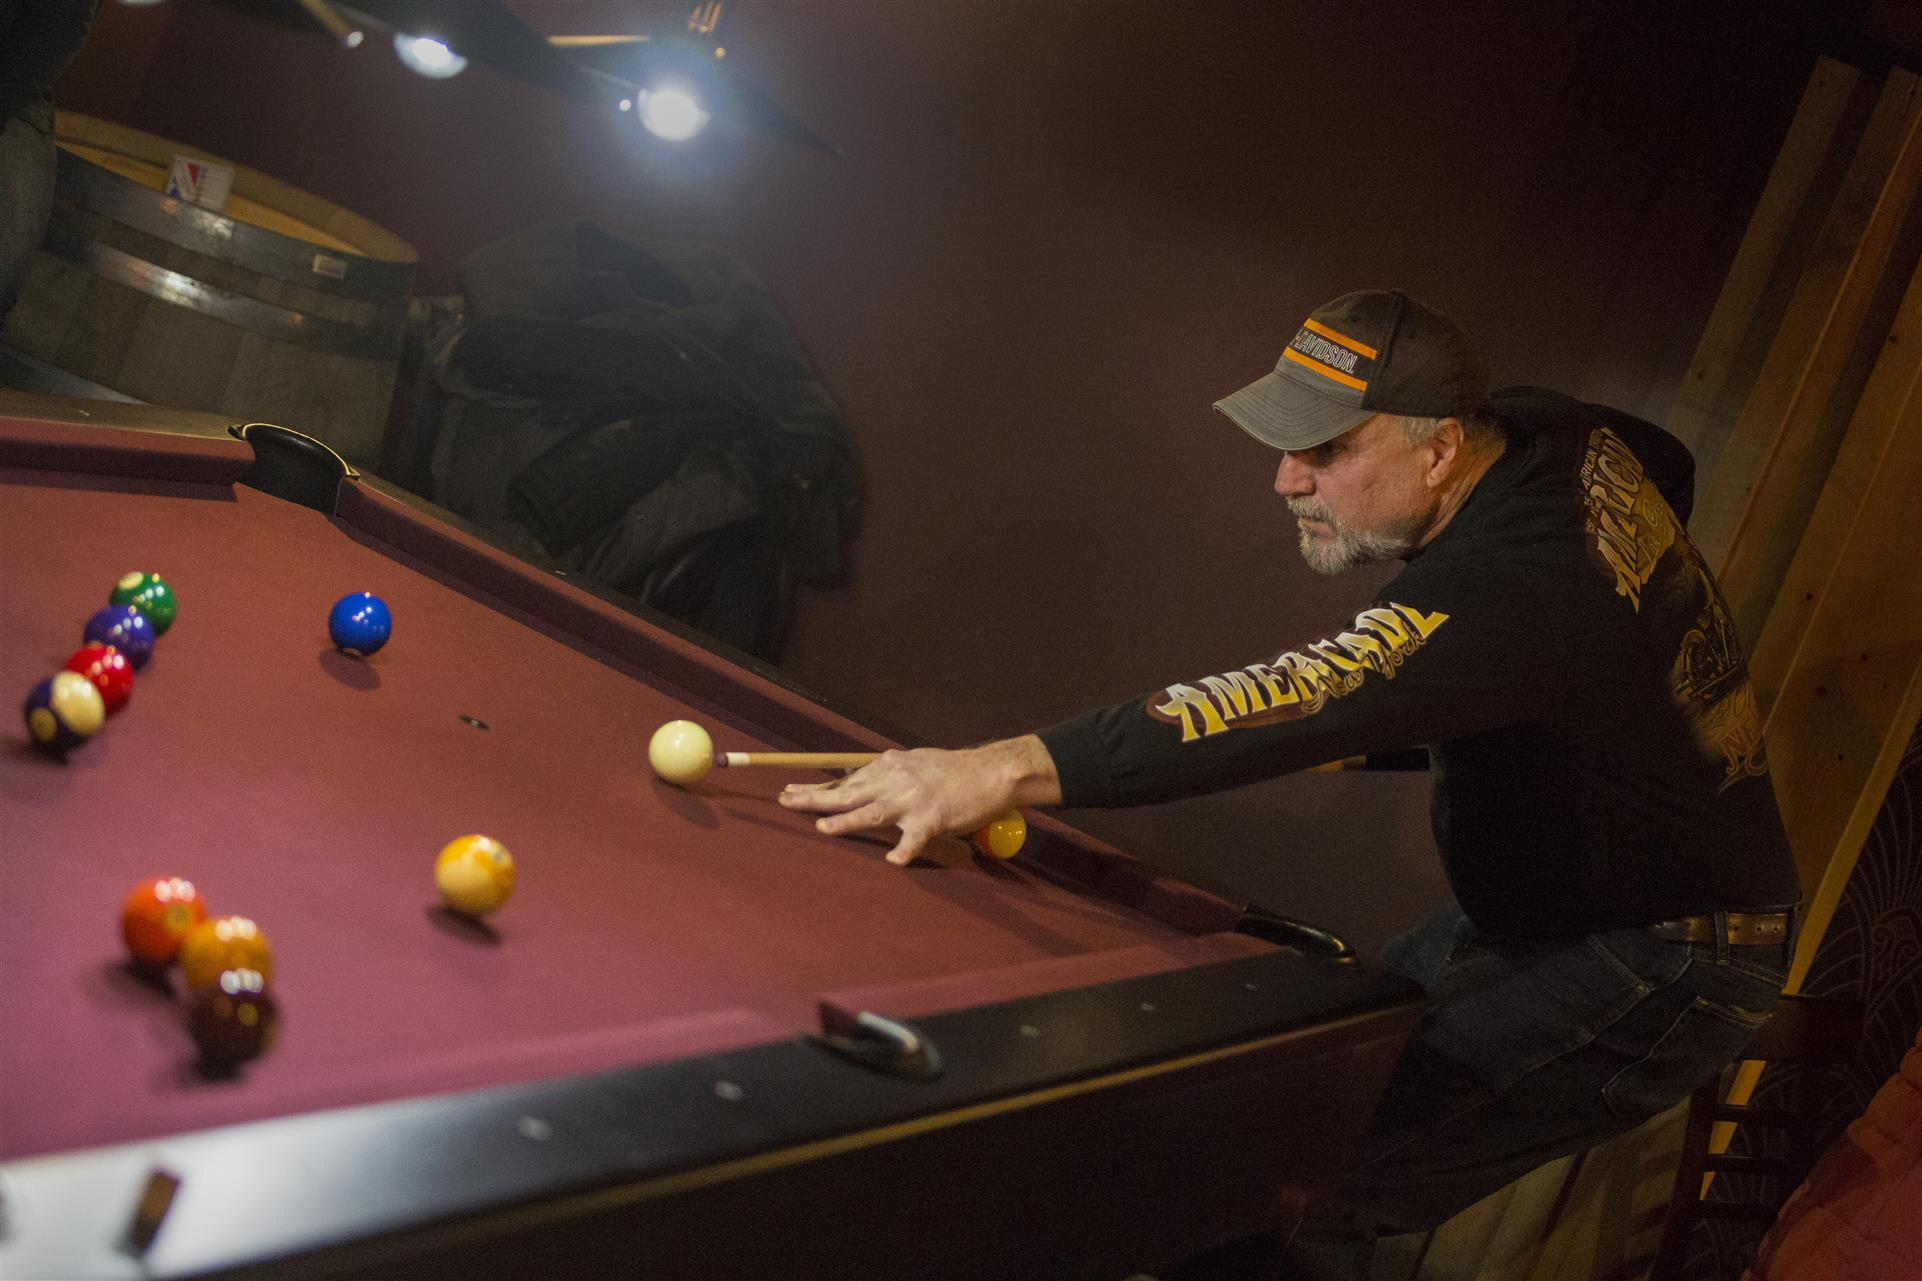 a man playing pool